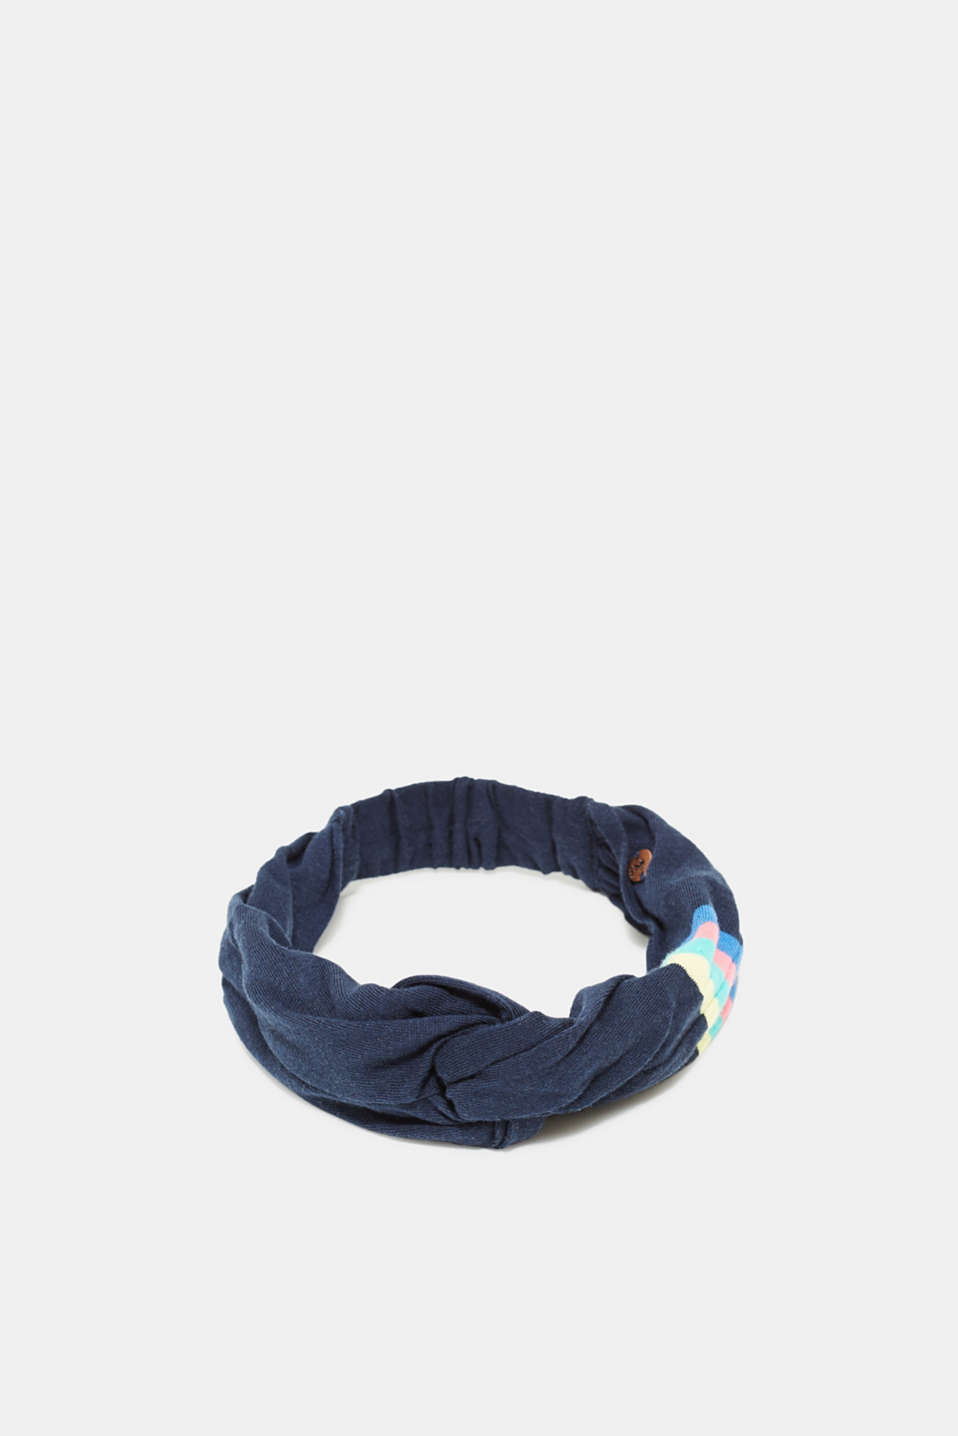 edc - Headband with a knot detail, 100% cotton